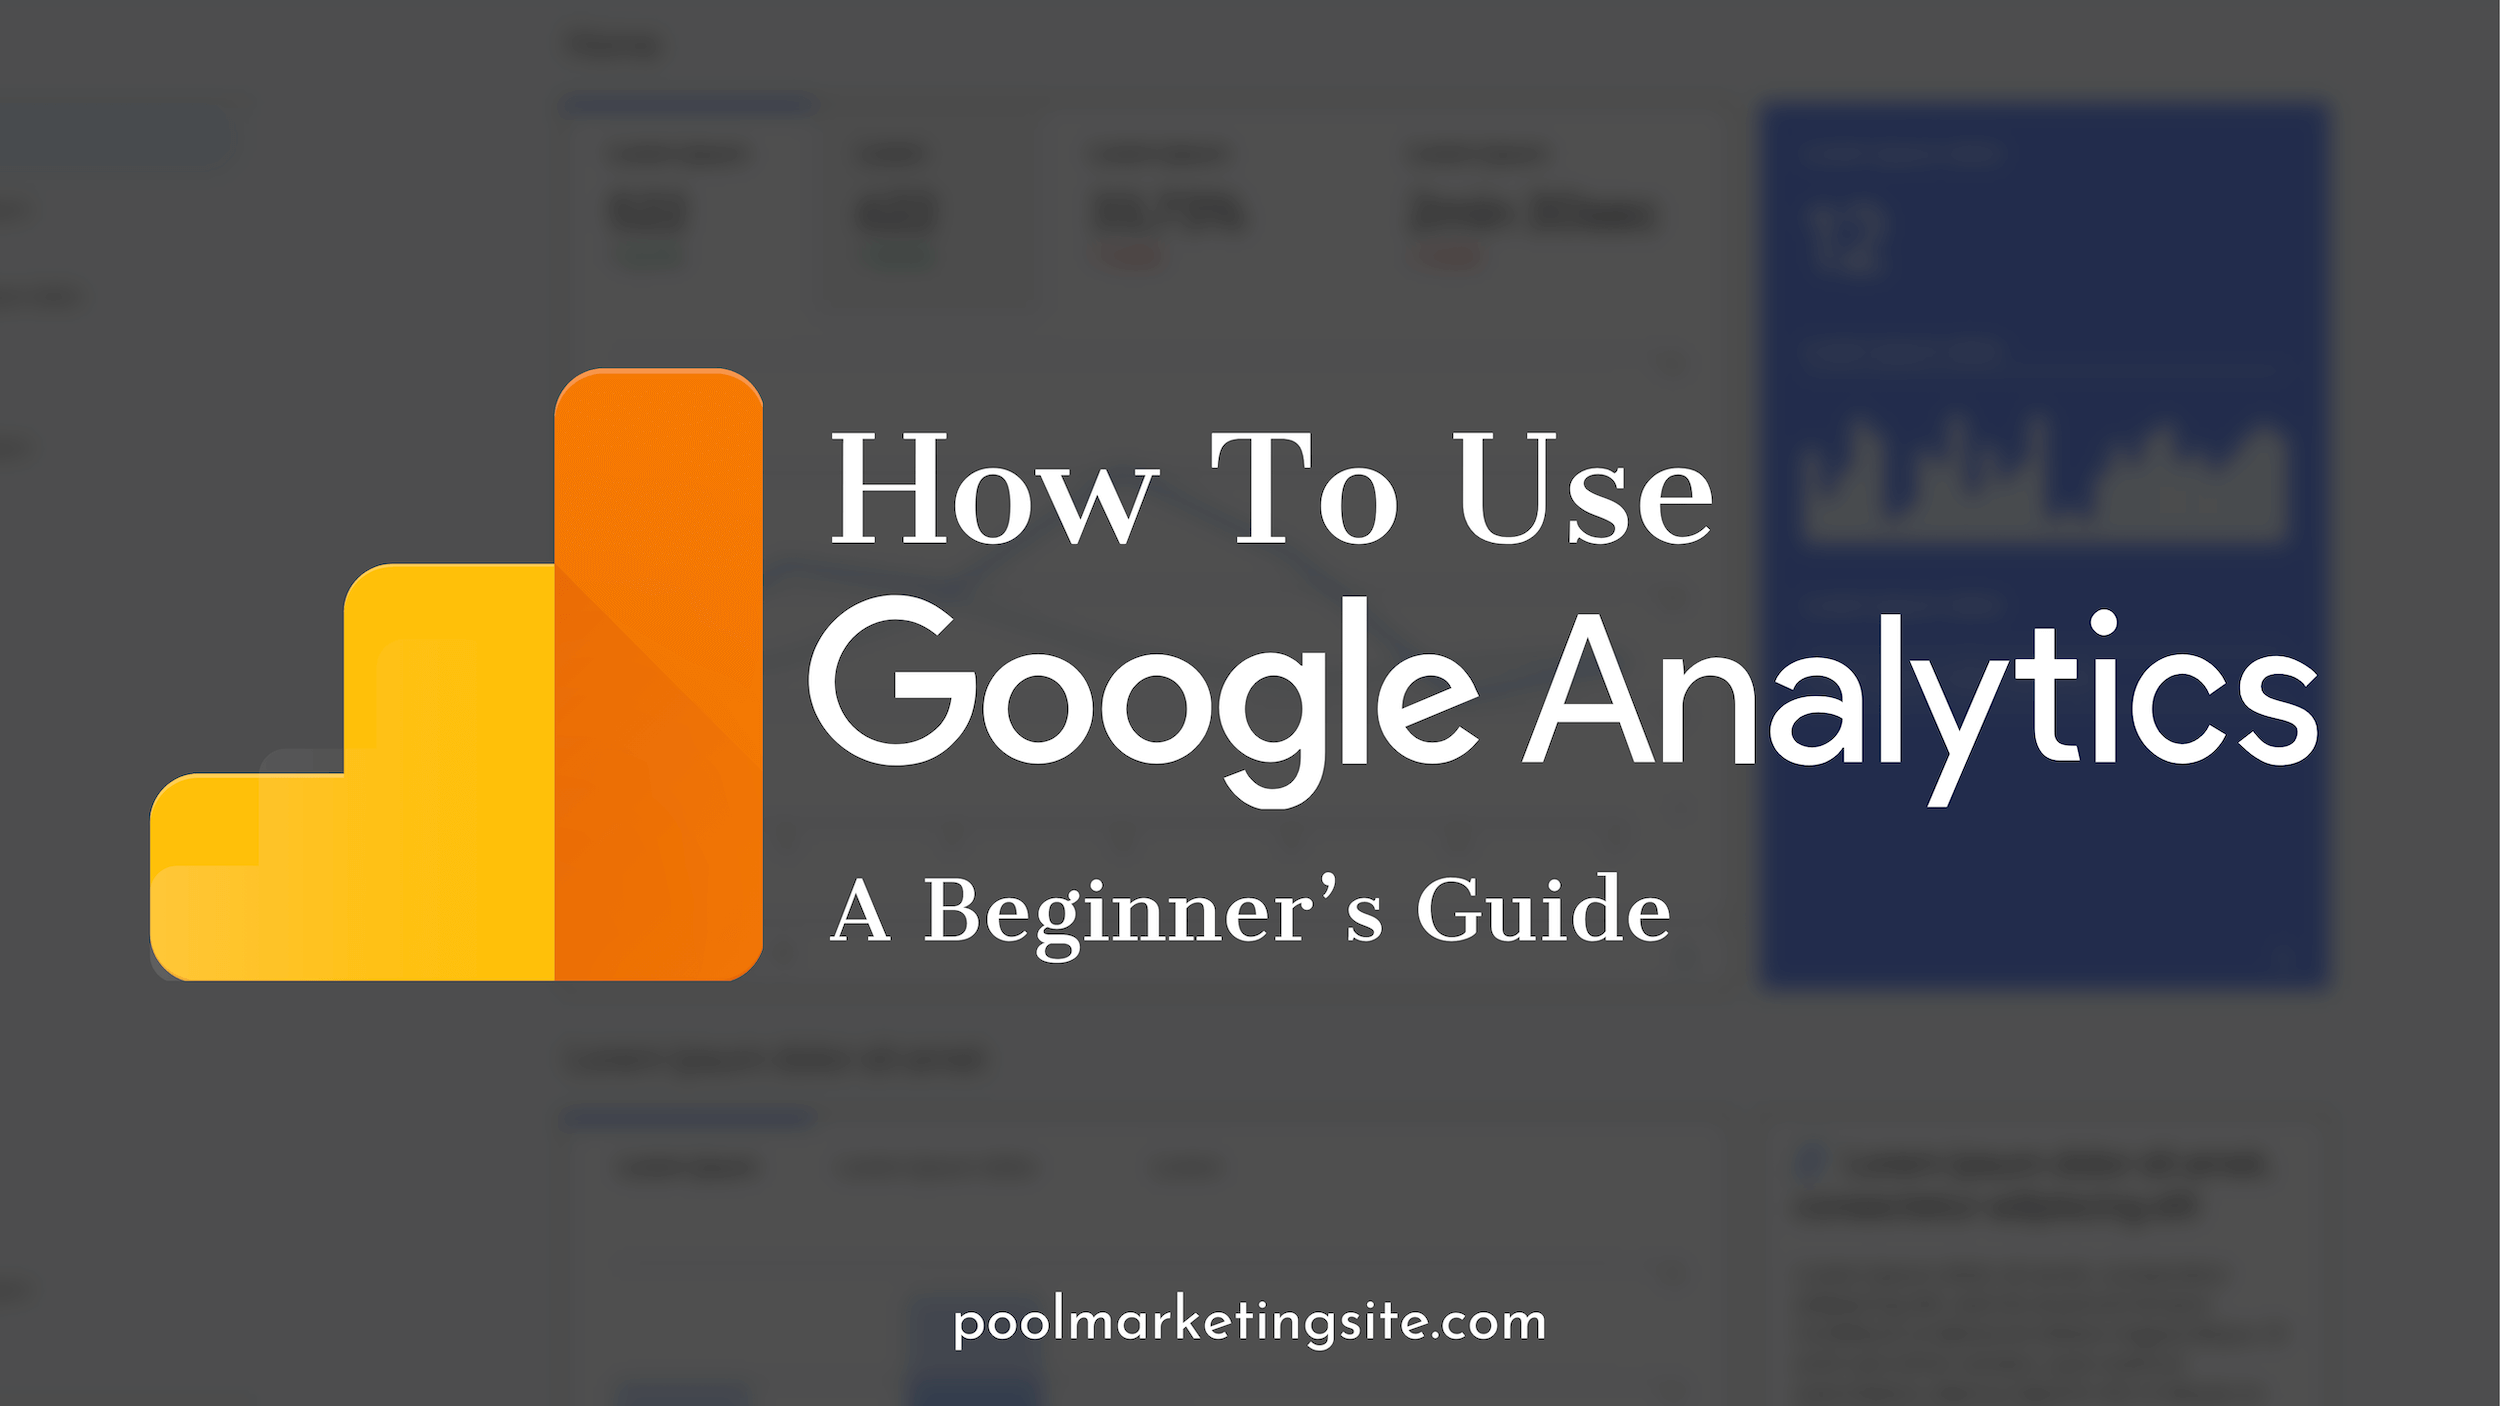 How to Use Google Analytics: A Beginner's Guide